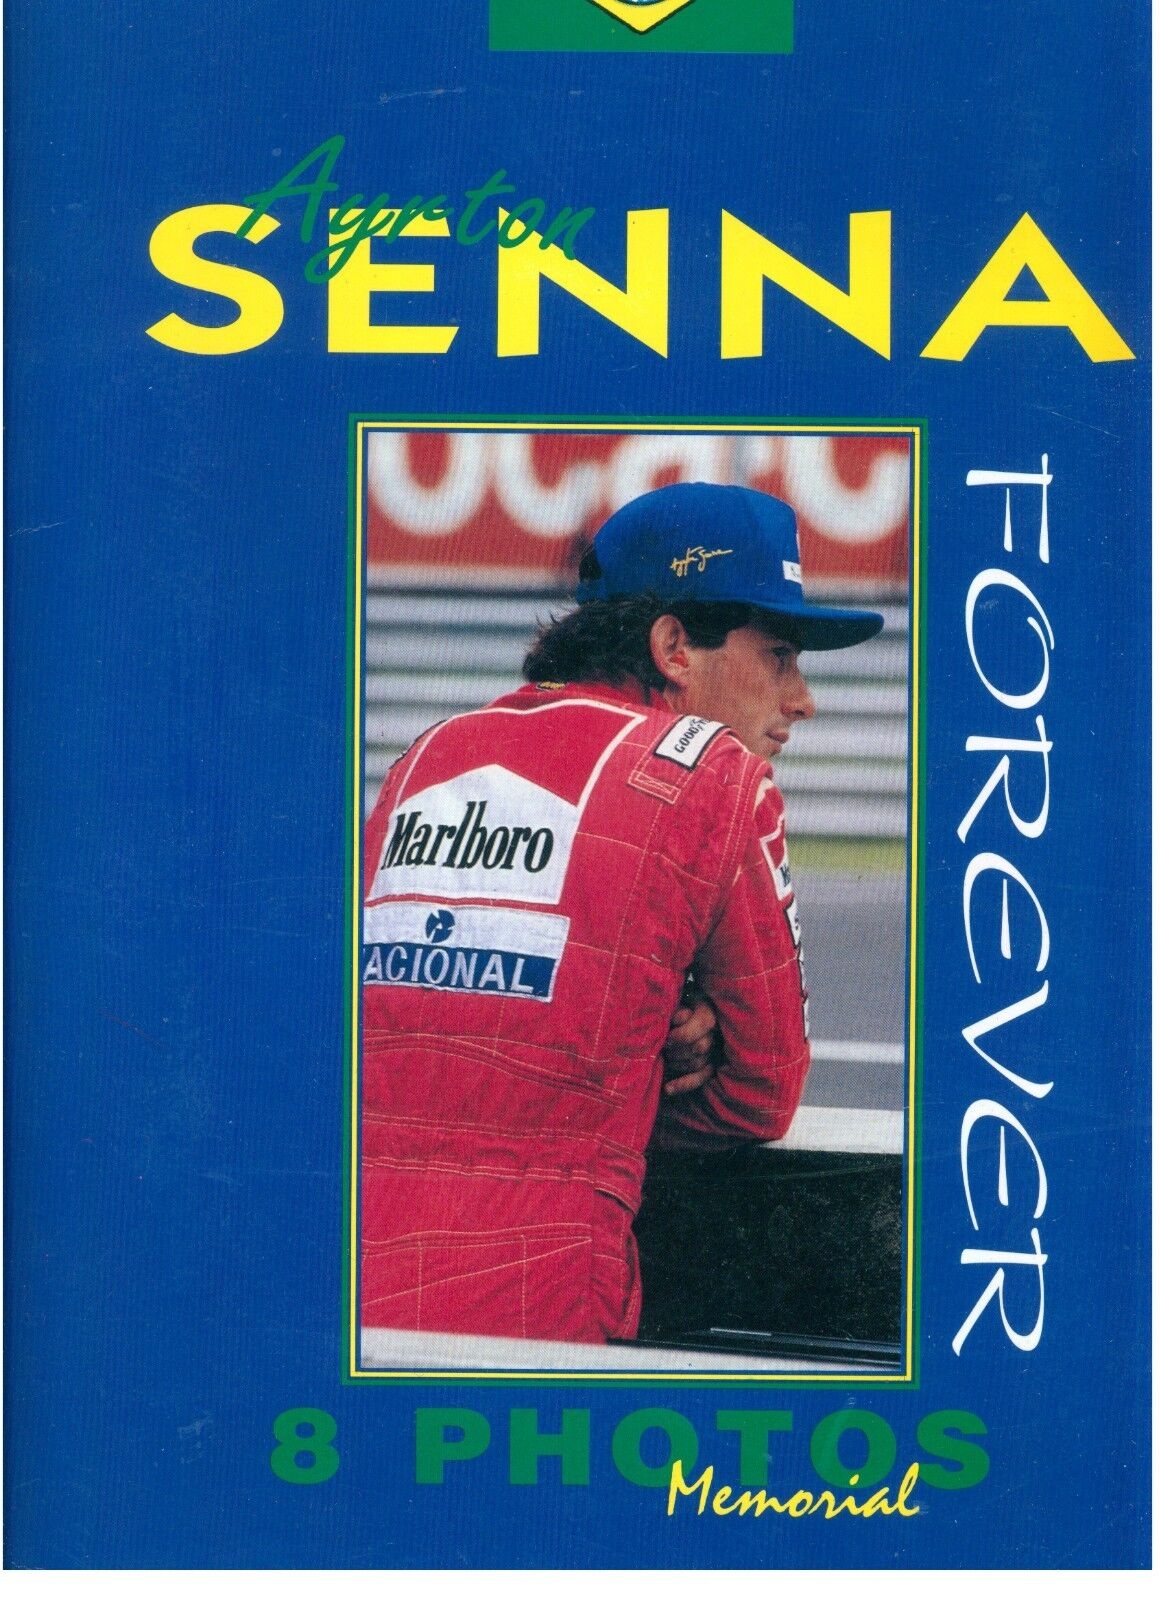 AYRTON SENNA FOREVER 8 PHOTOS MEMORIAL EUROPEAN BOOK SERIE LIMITATA ANNI '90